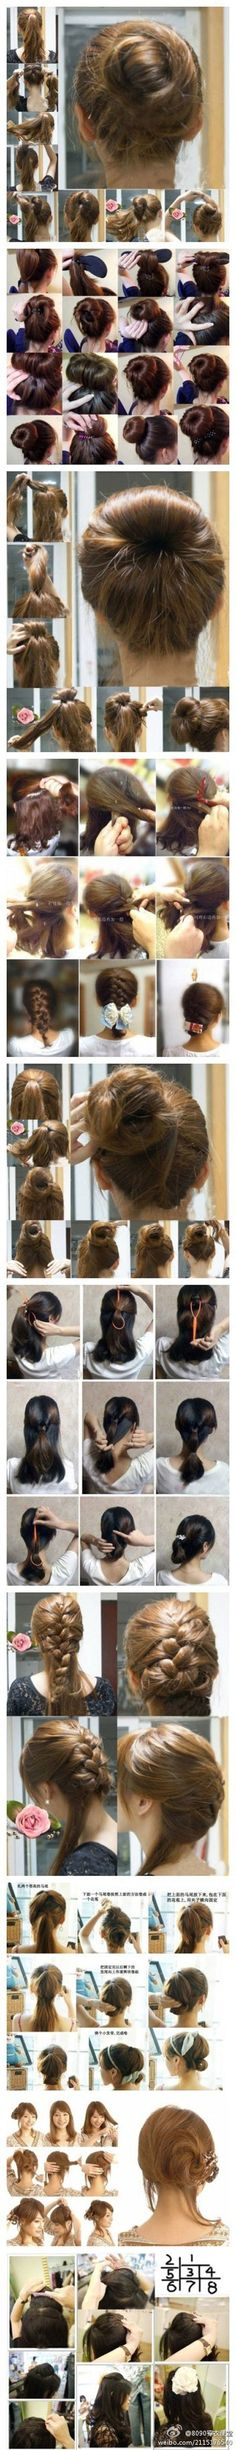 Too many EASY ideas for long hair!  Watch out world!